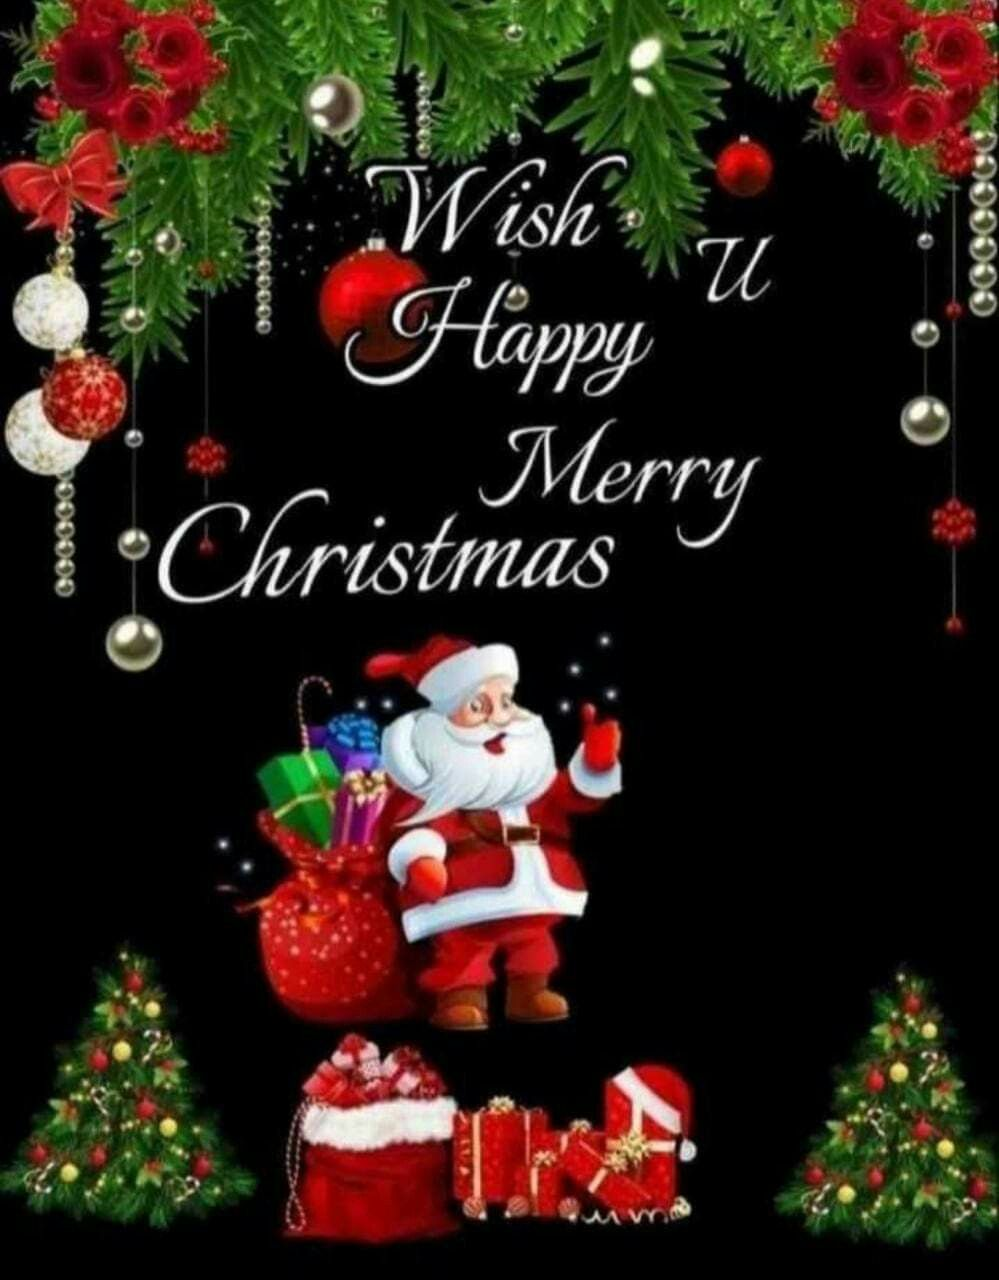 Happy merry christmas by Beautiful life SKL on Beautiful